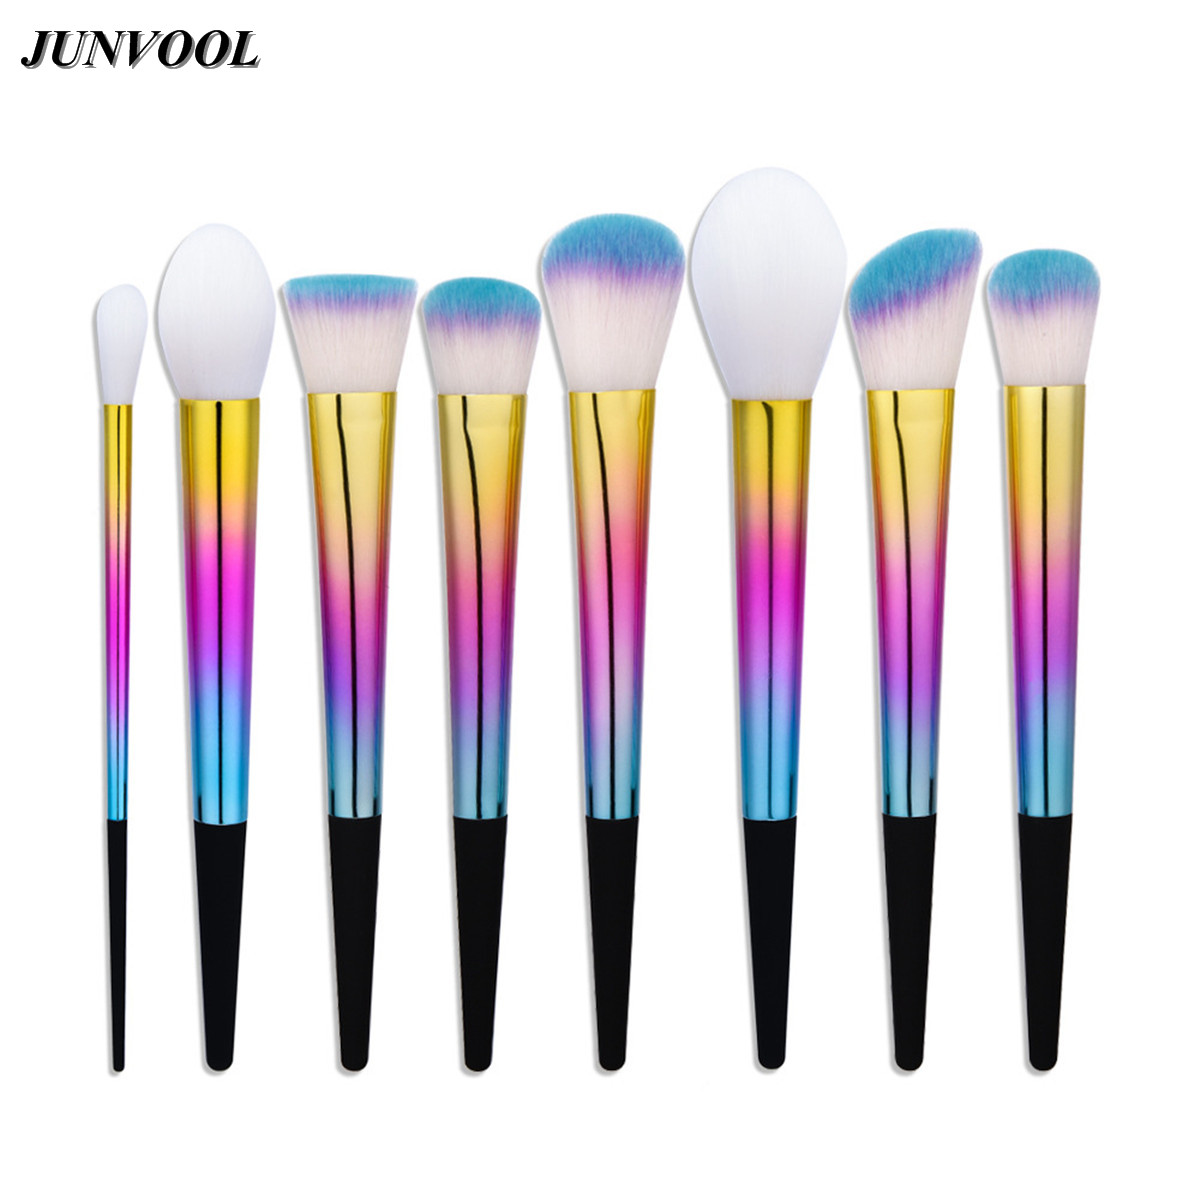 8pcs Make Up Fantasy Foundation Brushes Set Tapered Handle Face Professional Powder Blush Contour Cosmetic Makeup Brush Tools